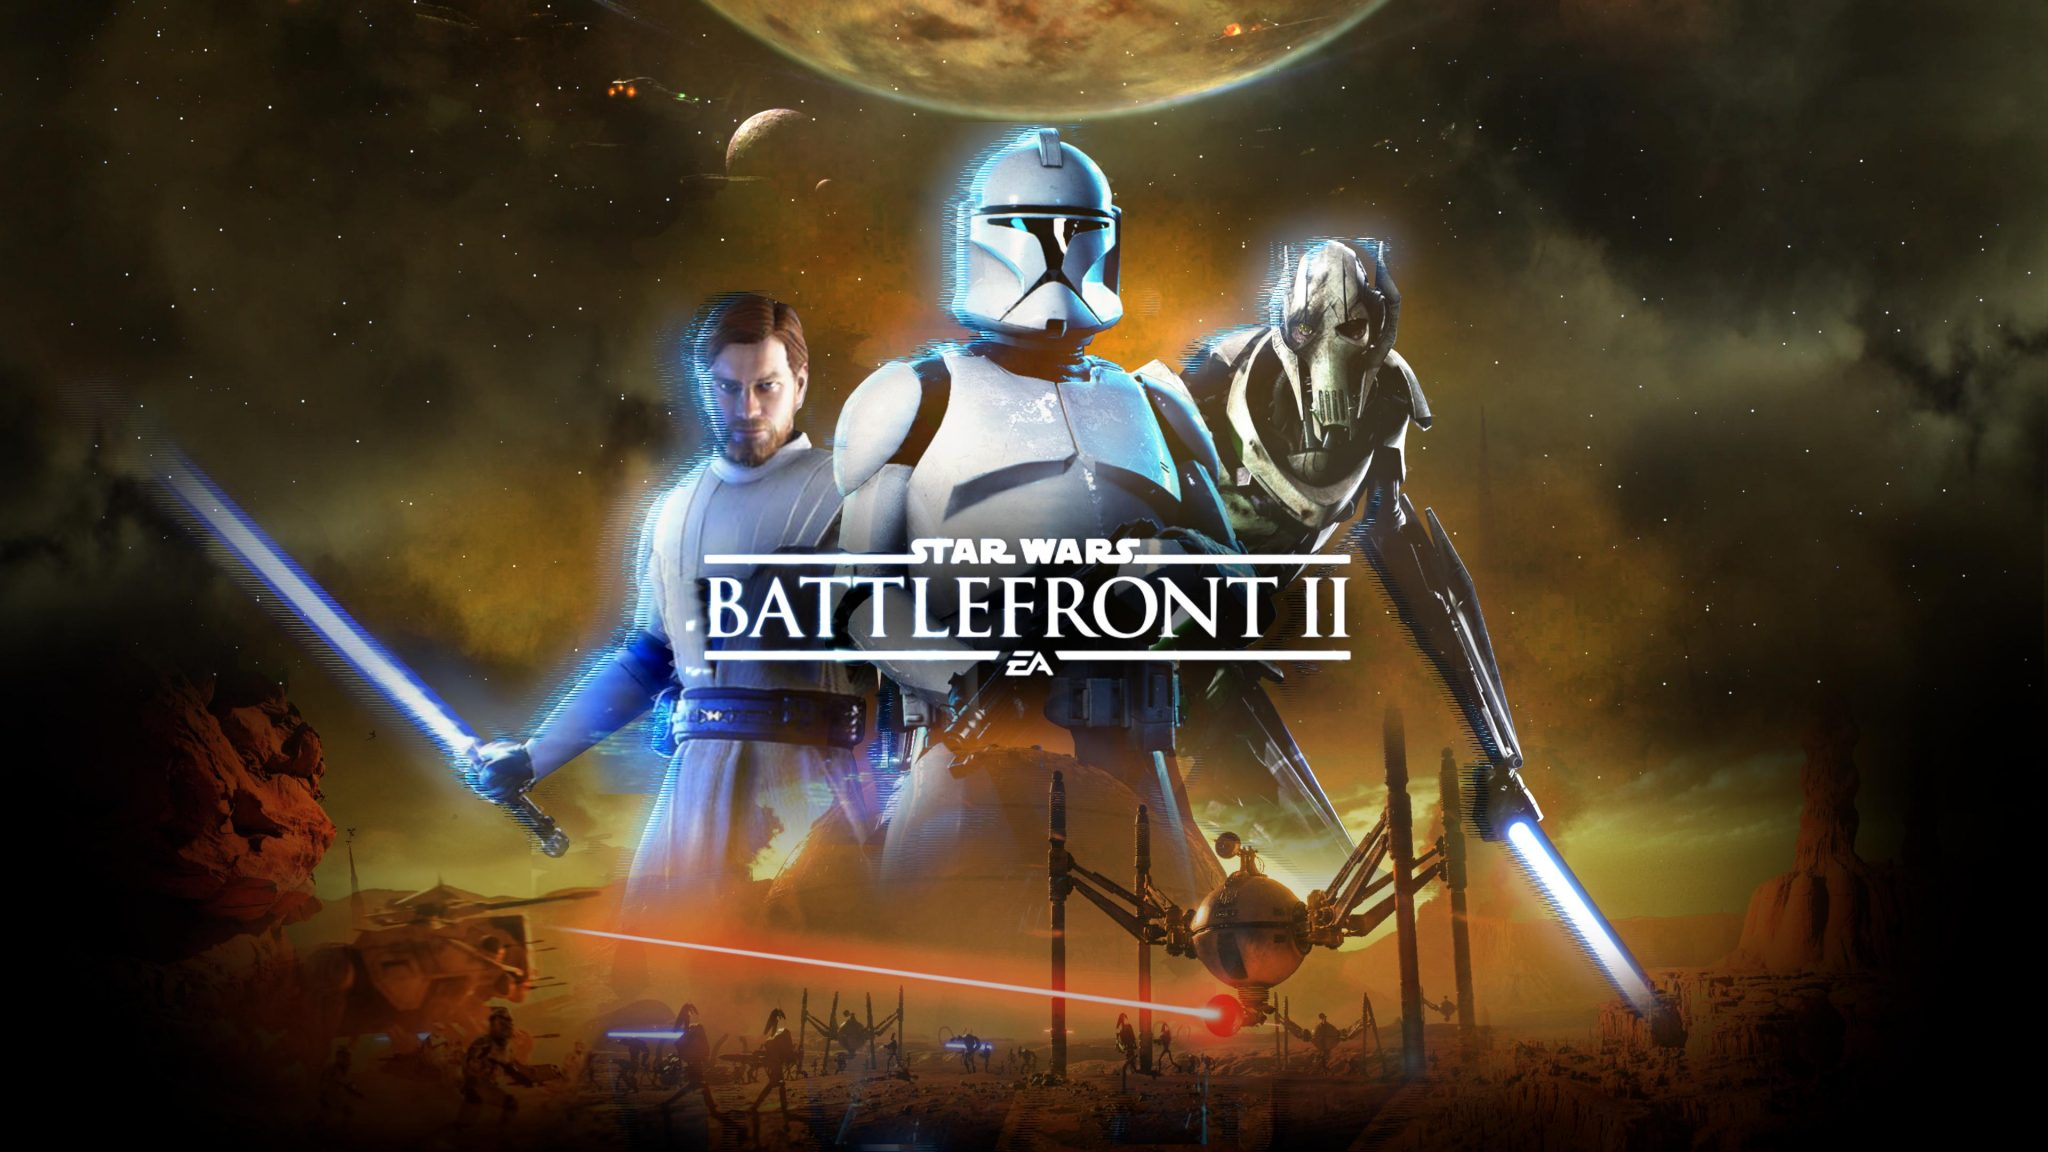 Free Download Full Game Star Wars Battlefront 2 Xbox One Version